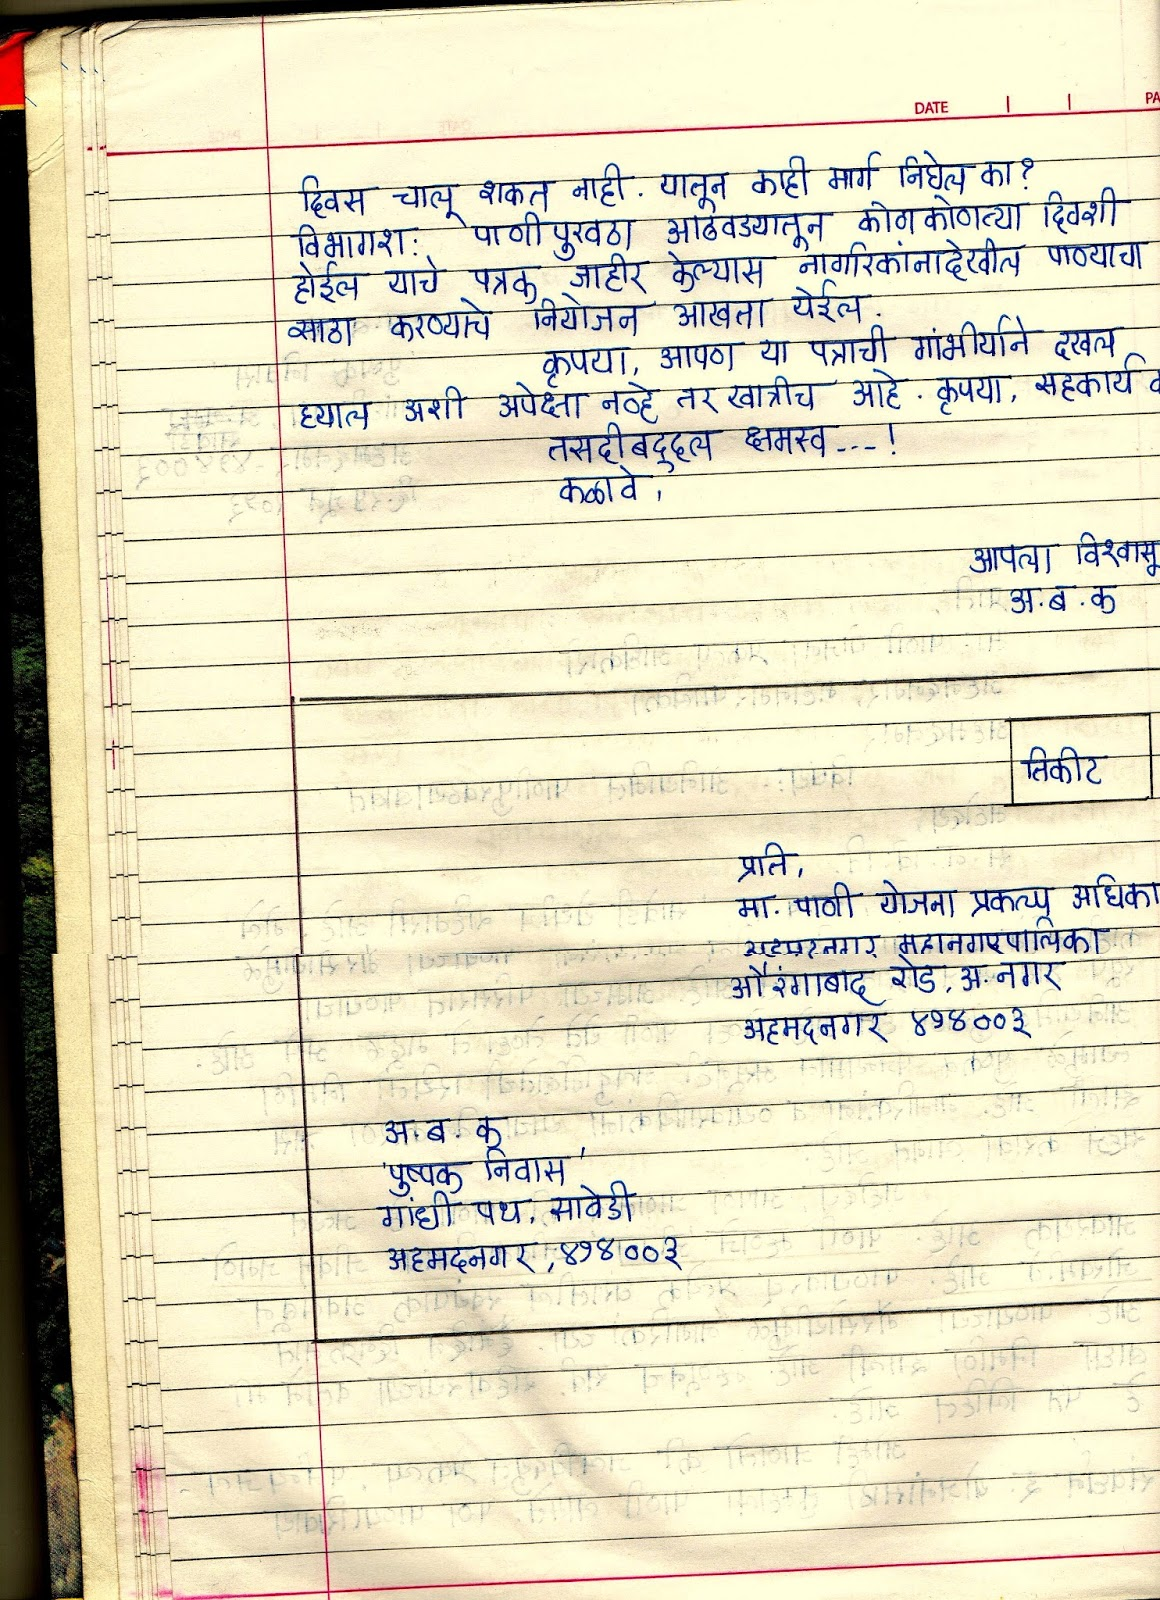 Application letter to mseb for faulty meter in marathi